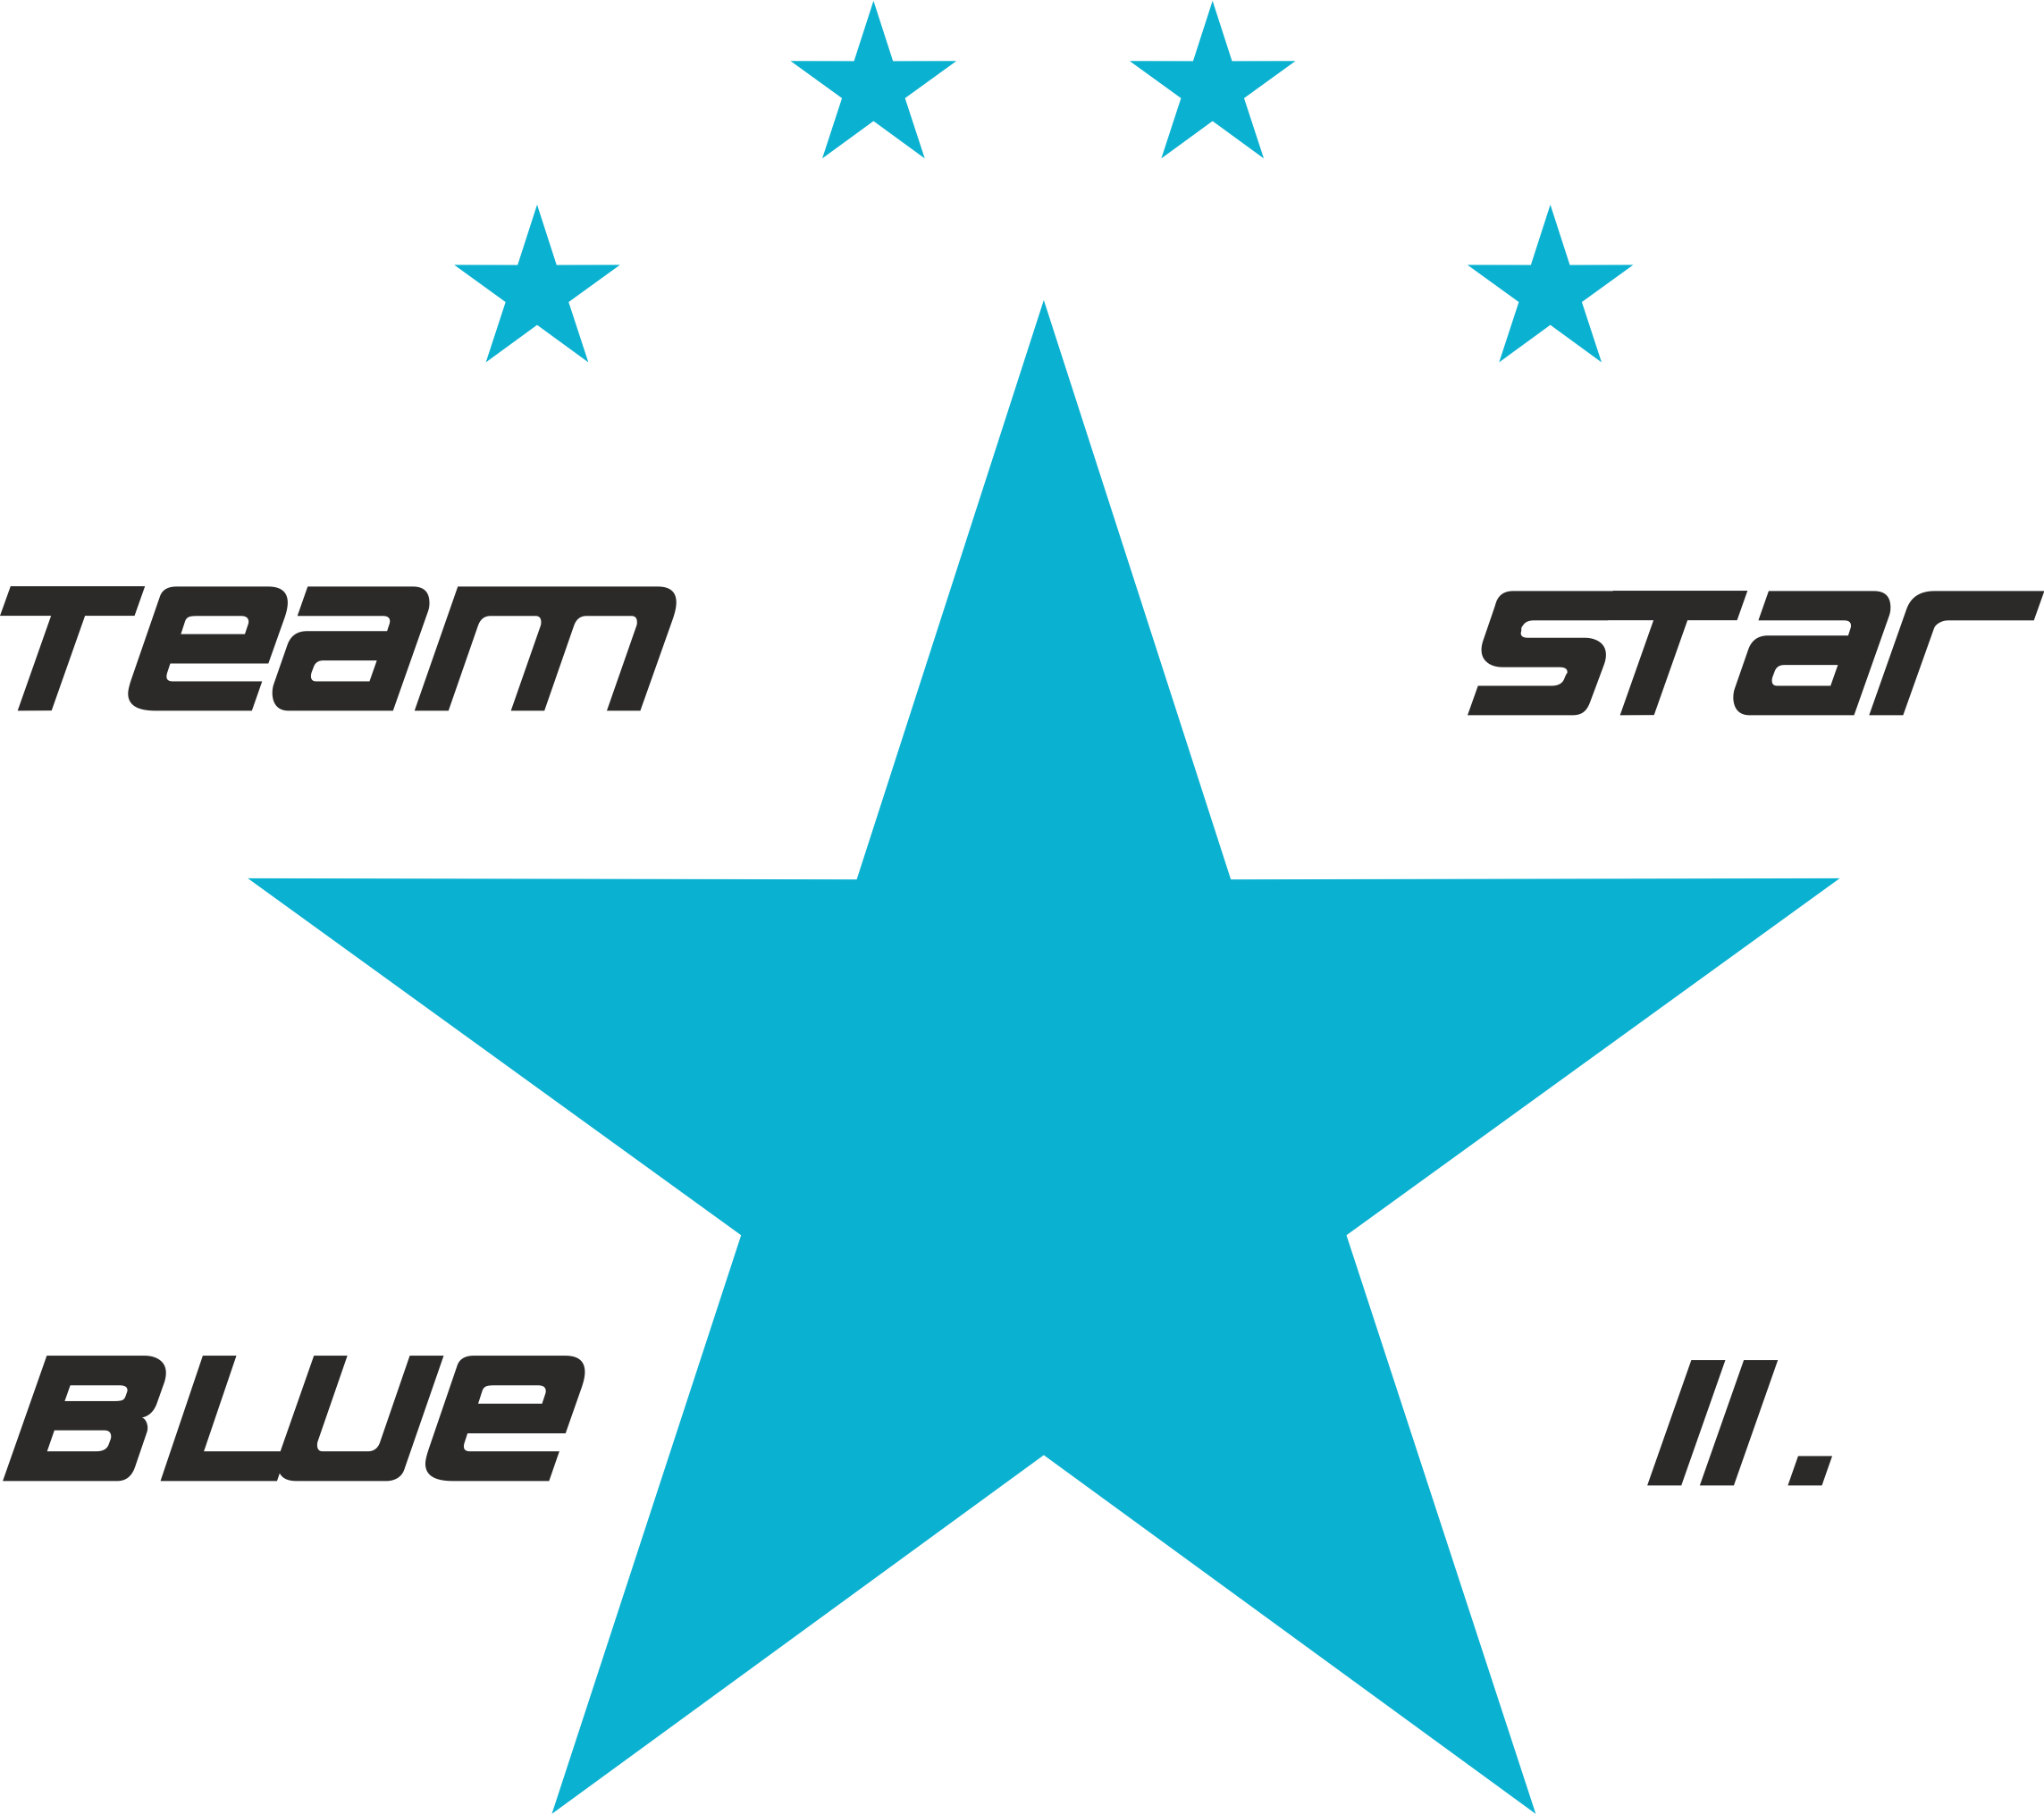 team-star-blue-ii-logo